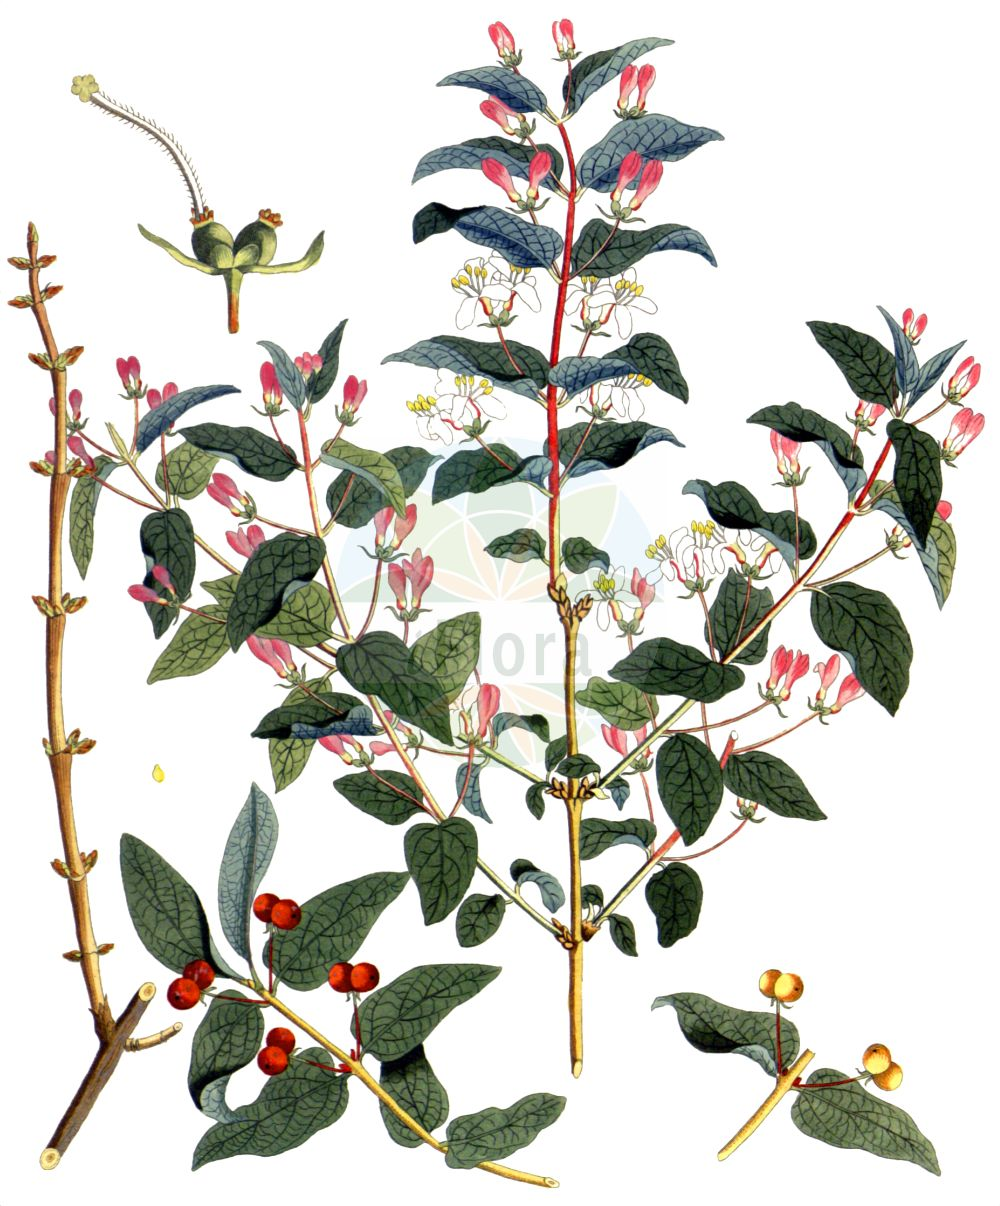 Historische Abbildung von Lonicera tatarica. Das Bild zeigt Blatt, Bluete, Frucht und Same. ---- Historical Drawing of Lonicera tatarica.The image is showing leaf, flower, fruit and seed.(Lonicera tatarica,Lonicera benjaminii,Lonicera tatarica,Lonicera,Heckenkirsche,Honeysuckle,Caprifoliaceae,Geissblattgewaechse,Honeysuckle family,Blatt,Bluete,Frucht,Same,leaf,flower,fruit,seed,Krauss (1802f))